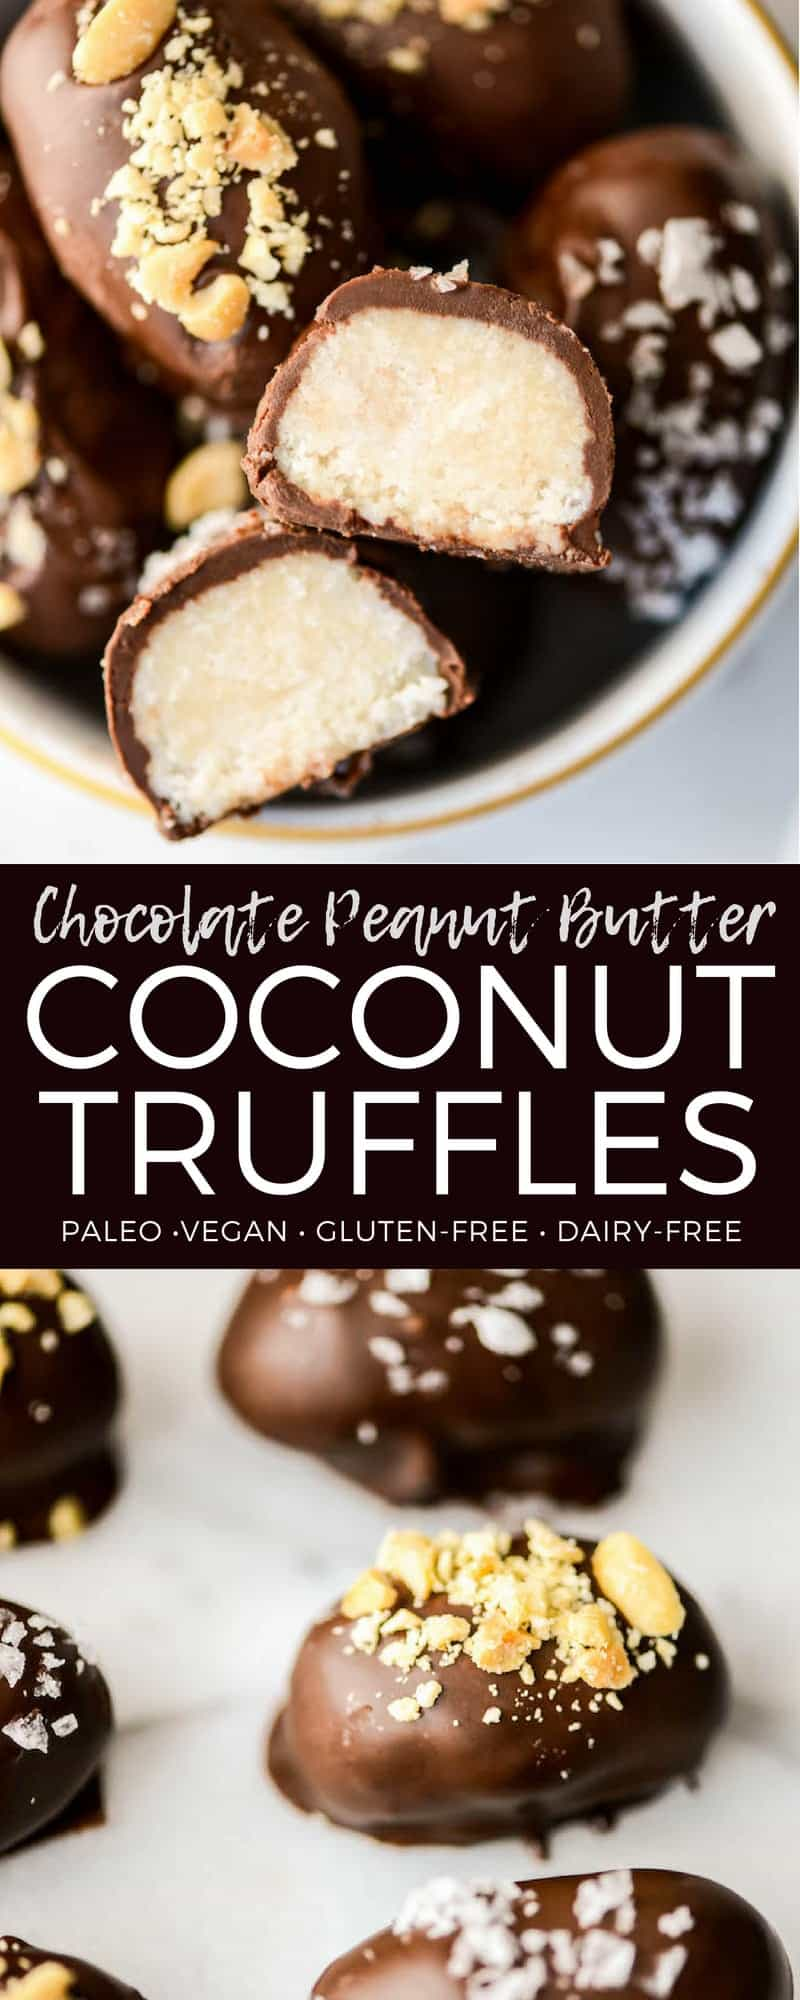 Peanut Butter Chocolate Coconut Truffles! A healthy candy recipe that's the perfect alternative for Halloween candy! Gluten & grain-free, vegan, dairy-free!  #chocolatetruffles #coconuttruffles #truffles #homemade #candy #recipe #glutenfree #dairyfree #vegan #paleo